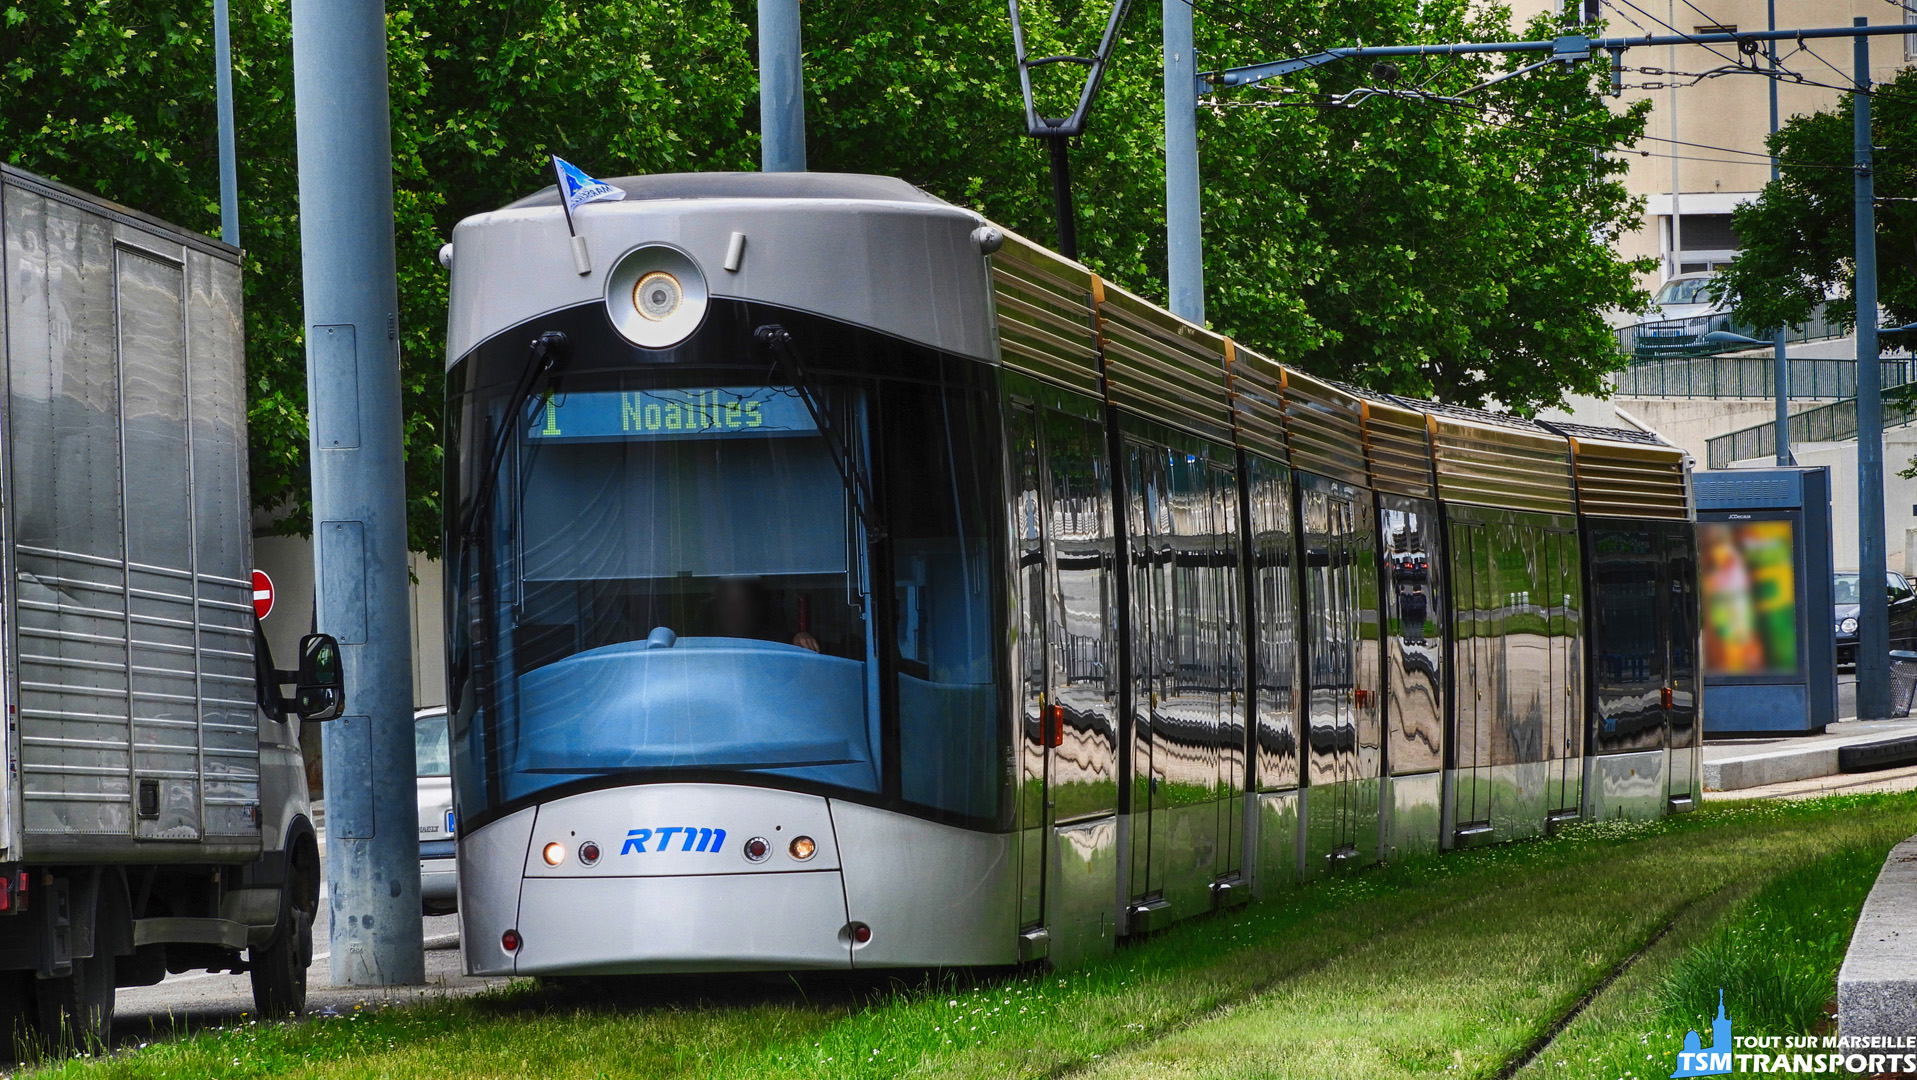 Bombardier Flexity Outlook Type C RTM qui quitte la station William Booth